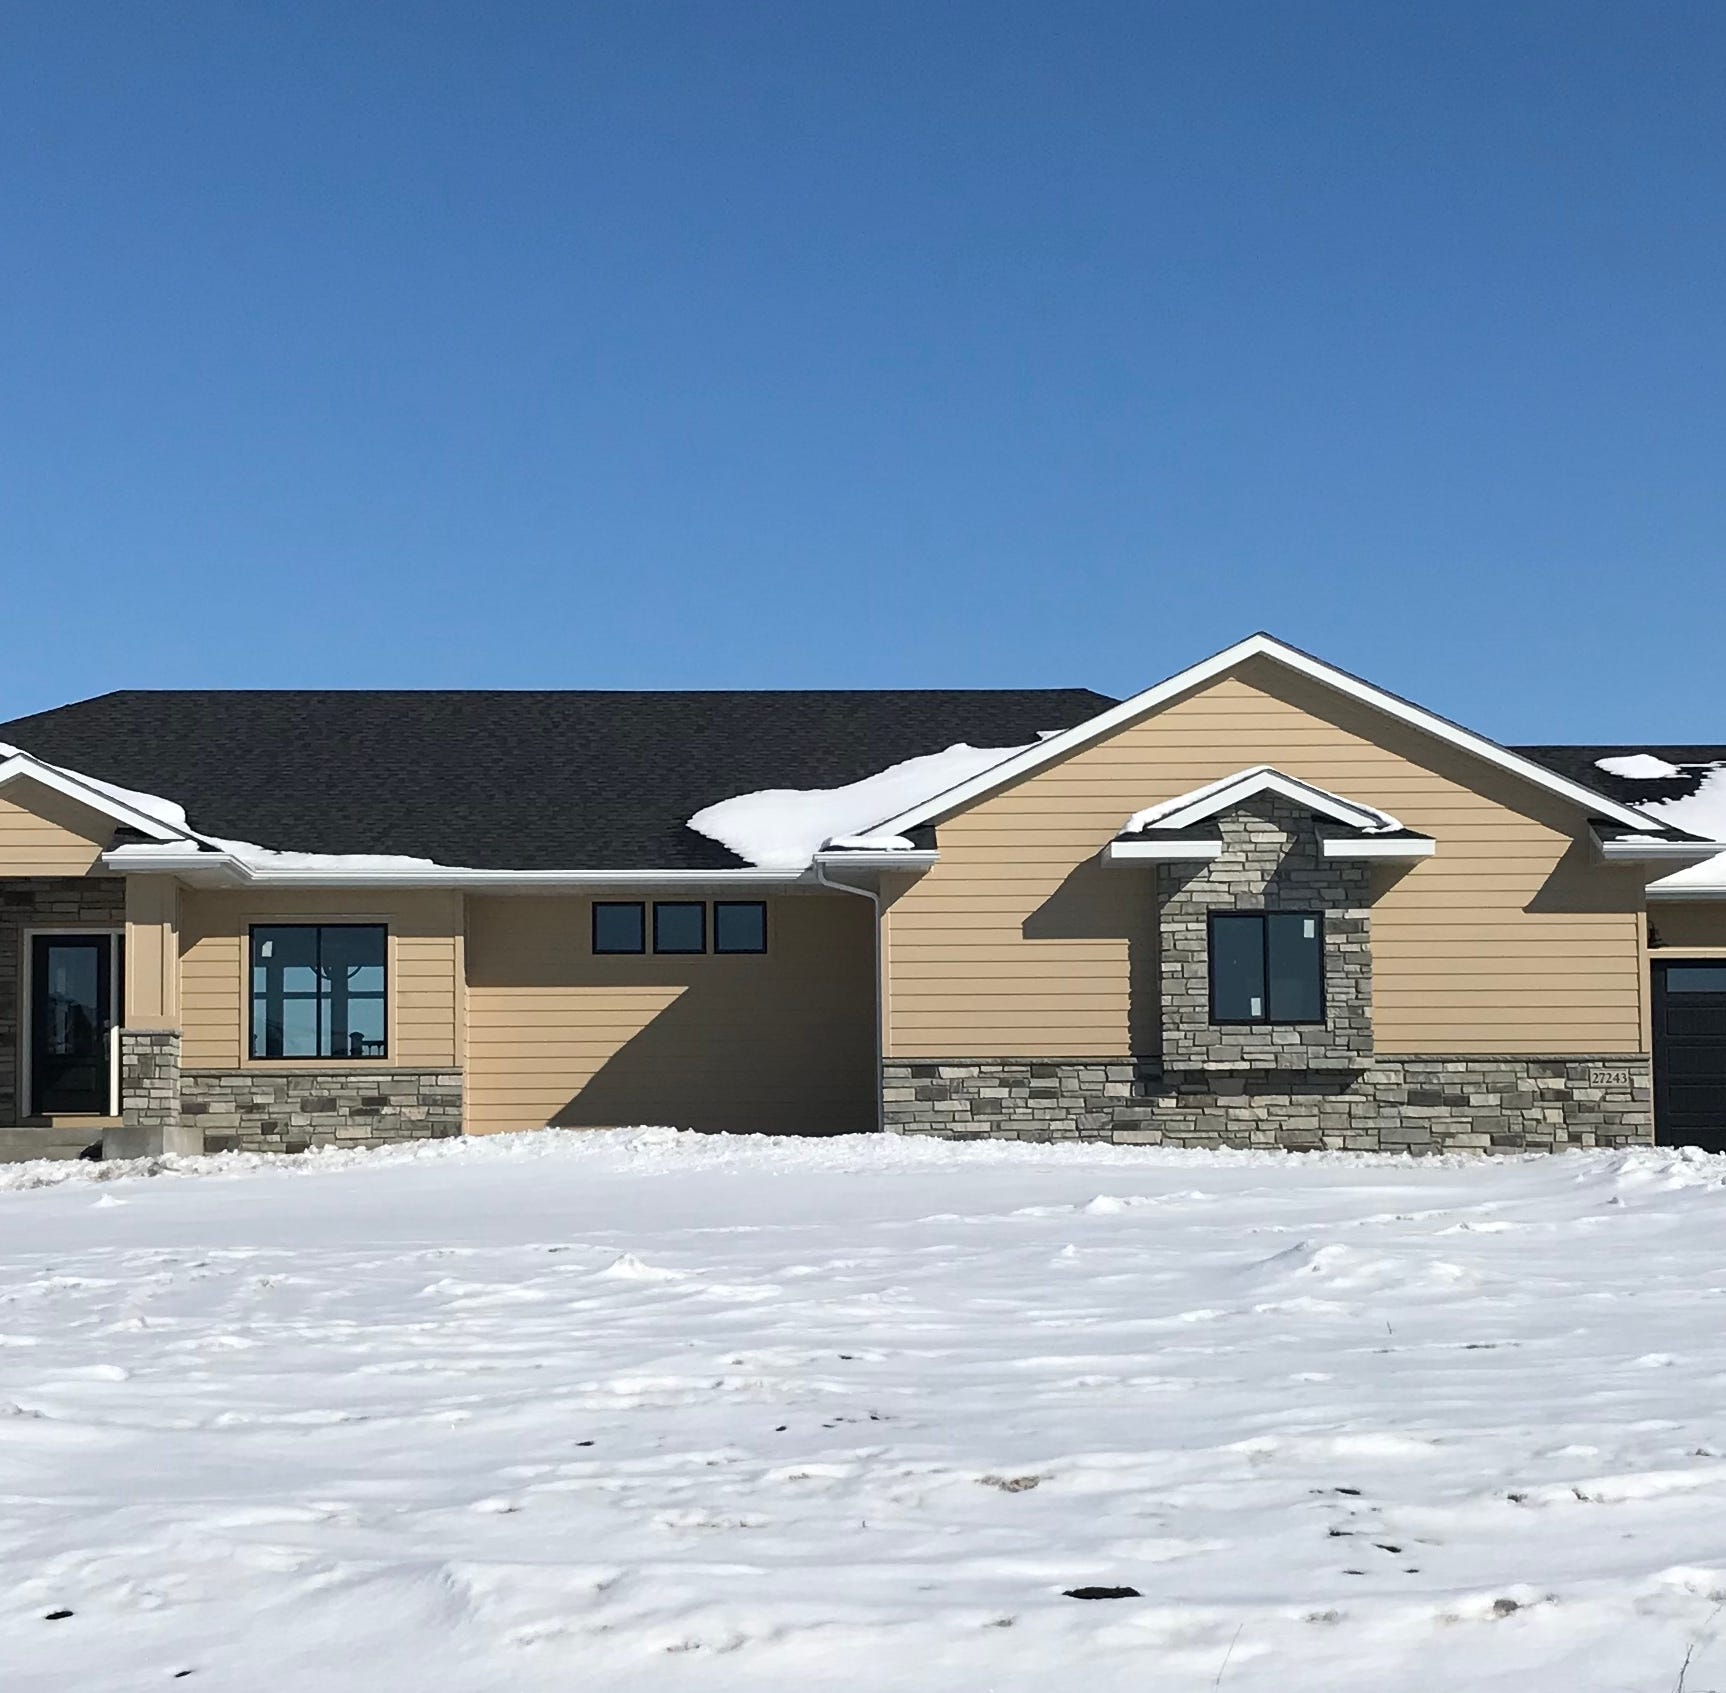 $739K new home next to Bakker Crossing golf course tops sales report